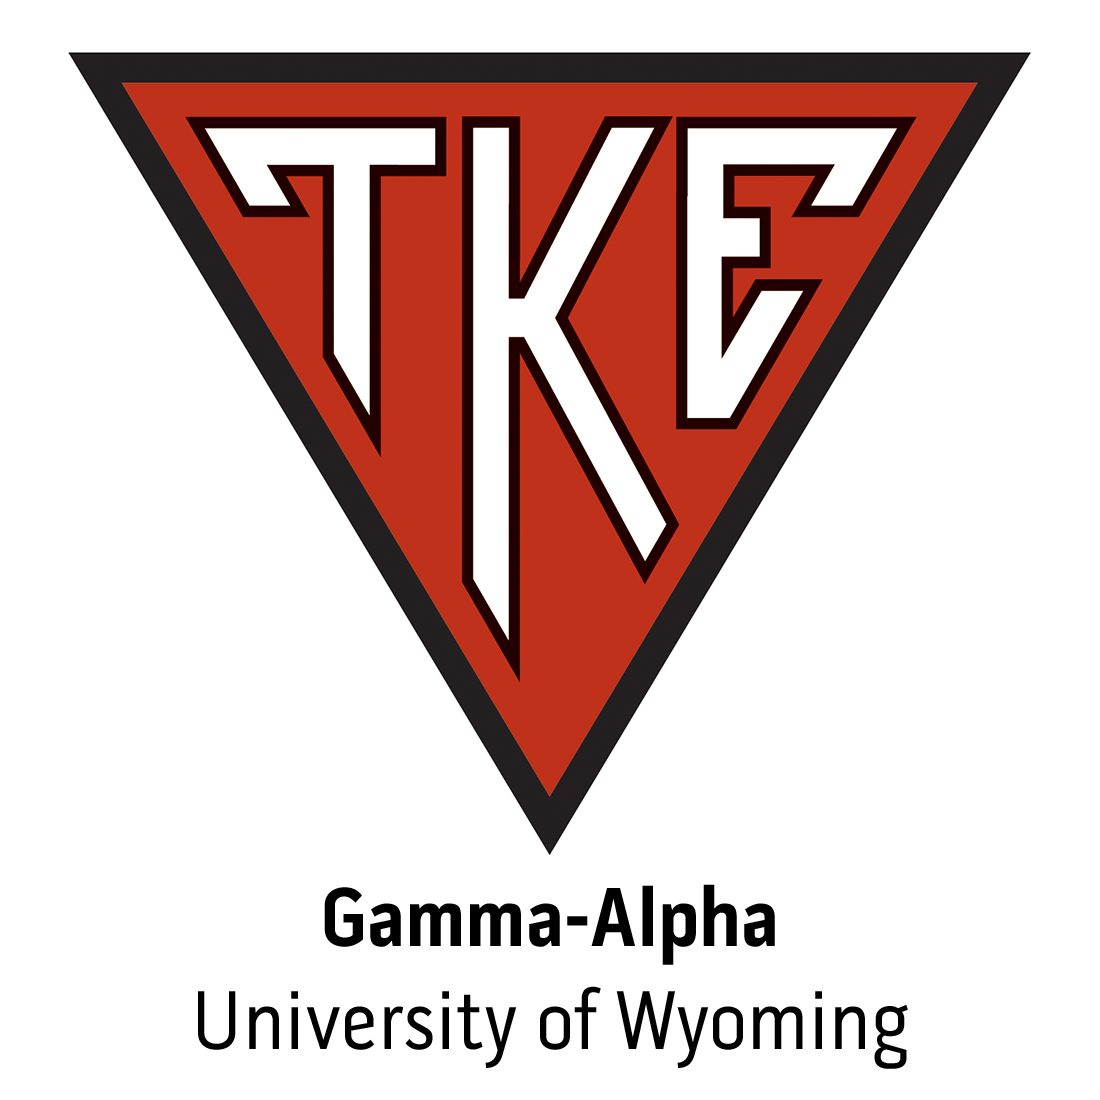 Gamma-Alpha Colony at University of Wyoming